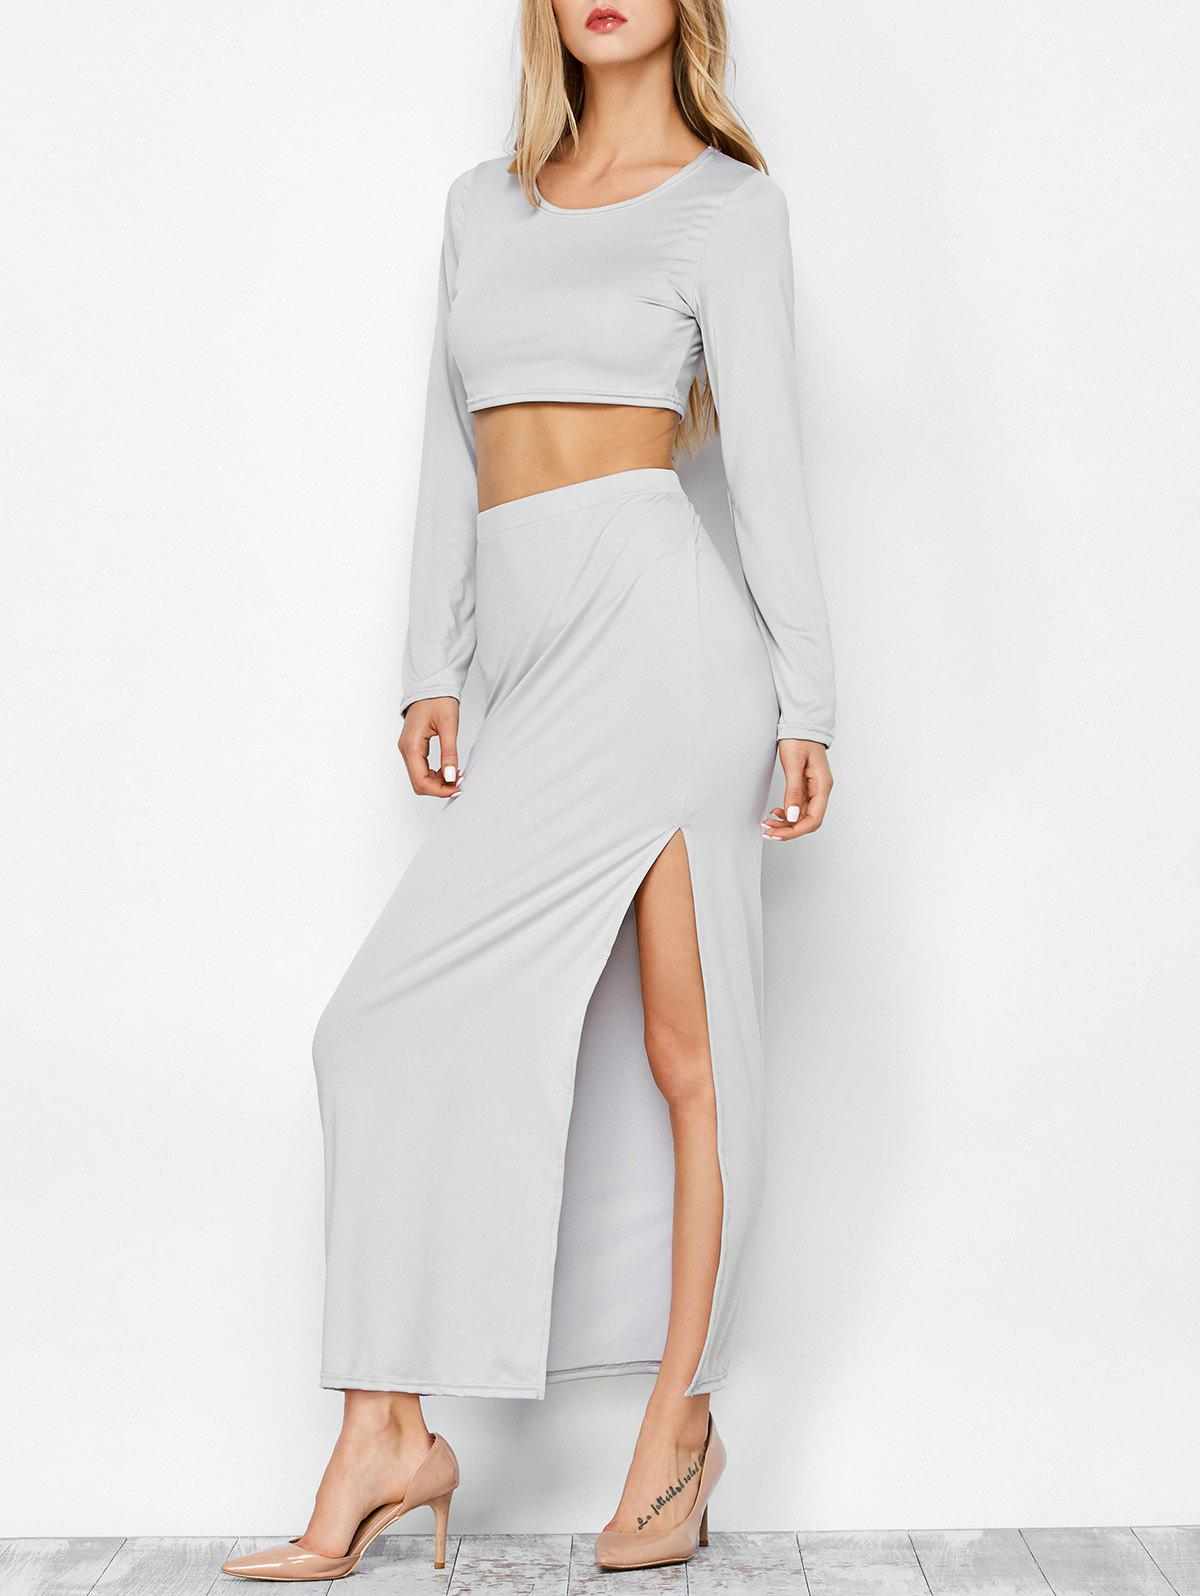 High Slit Long Sleeve Two Piece Dress - LIGHT GRAY M